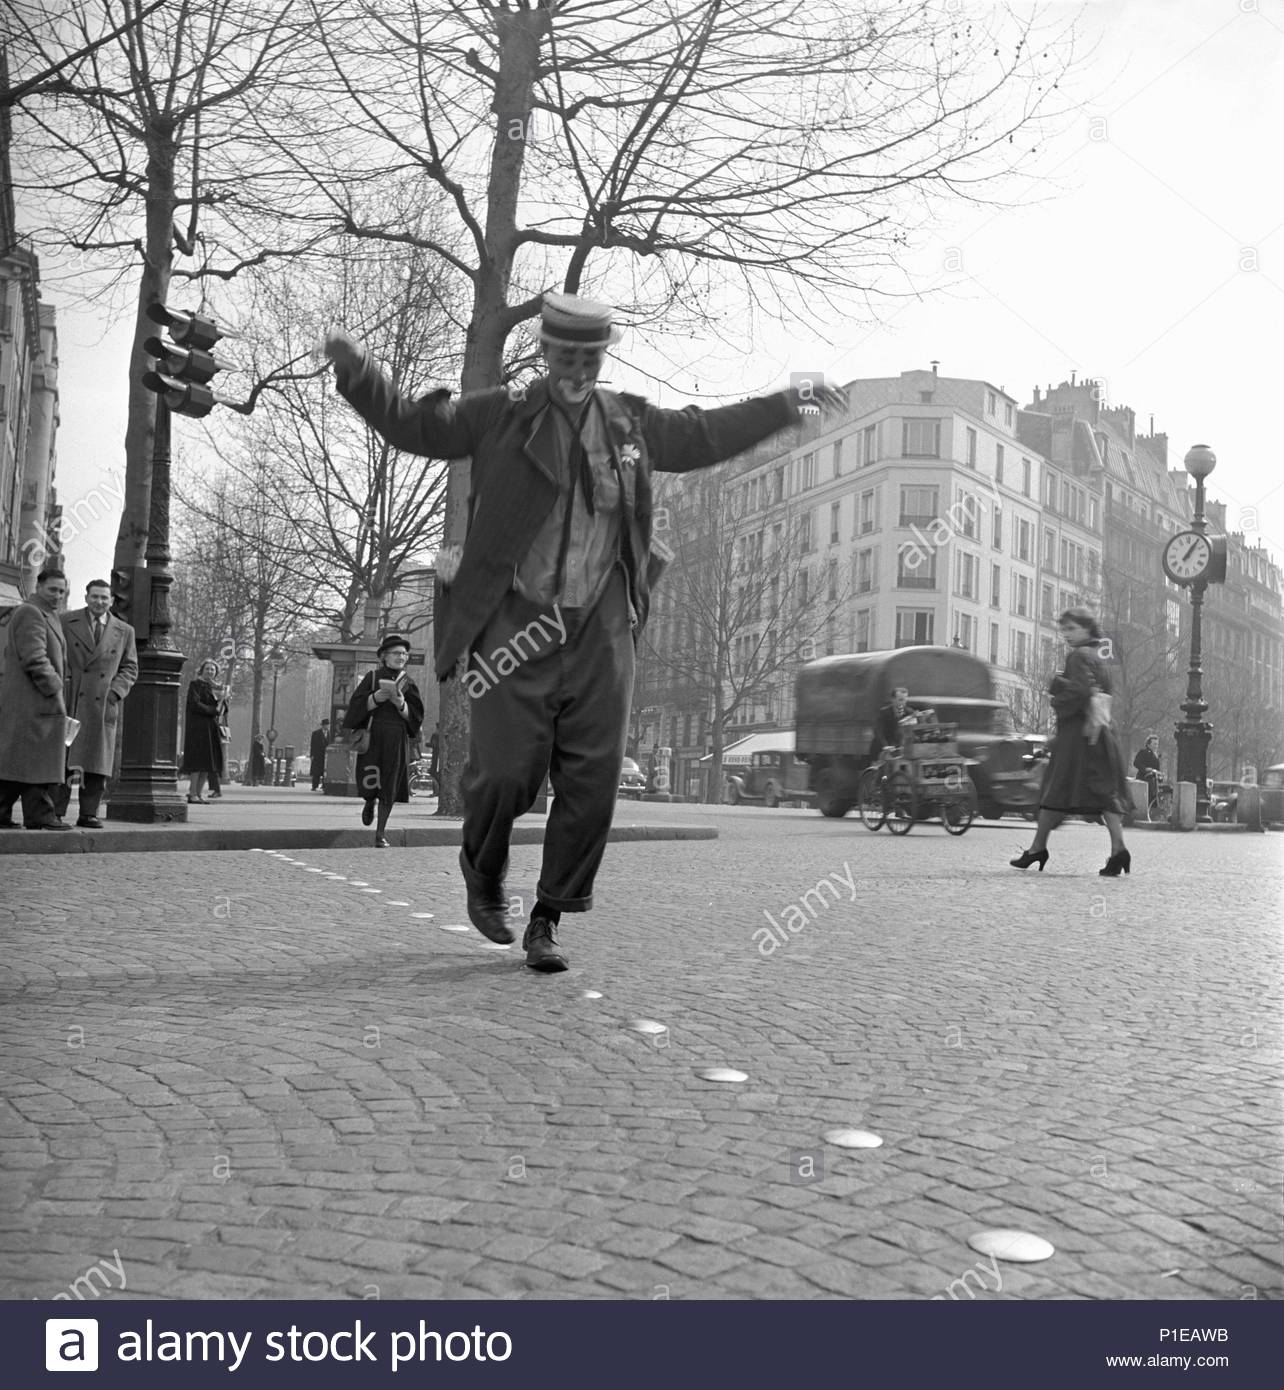 An American in Paris: Frank Billerbeck tries out his new clown routine in the streets of Paris, 1952. Location: Townscape, Paris, France. - Stock Image